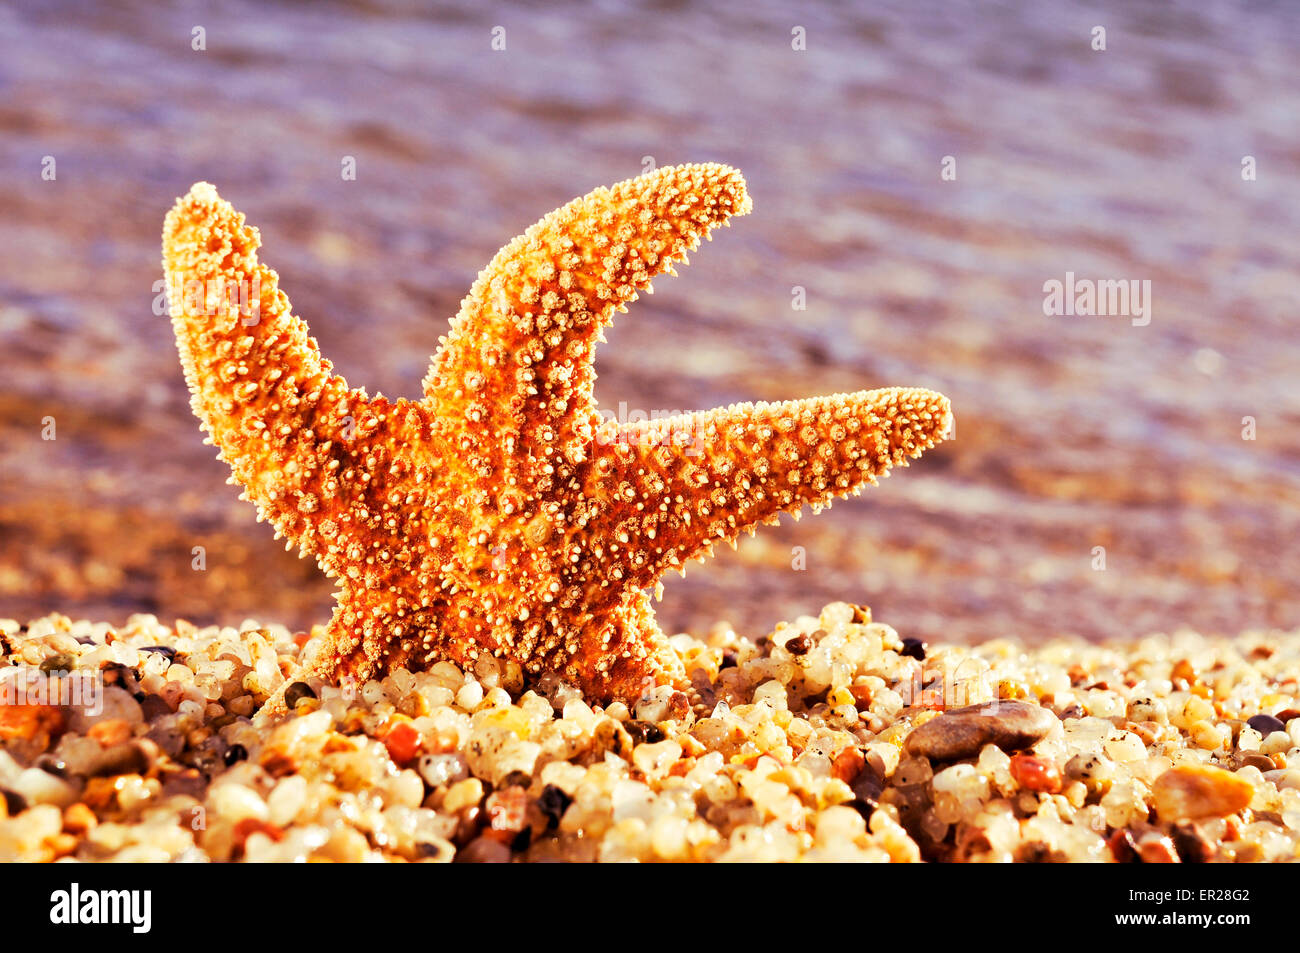 closeup of an orange seastar in the shore of the sea - Stock Image